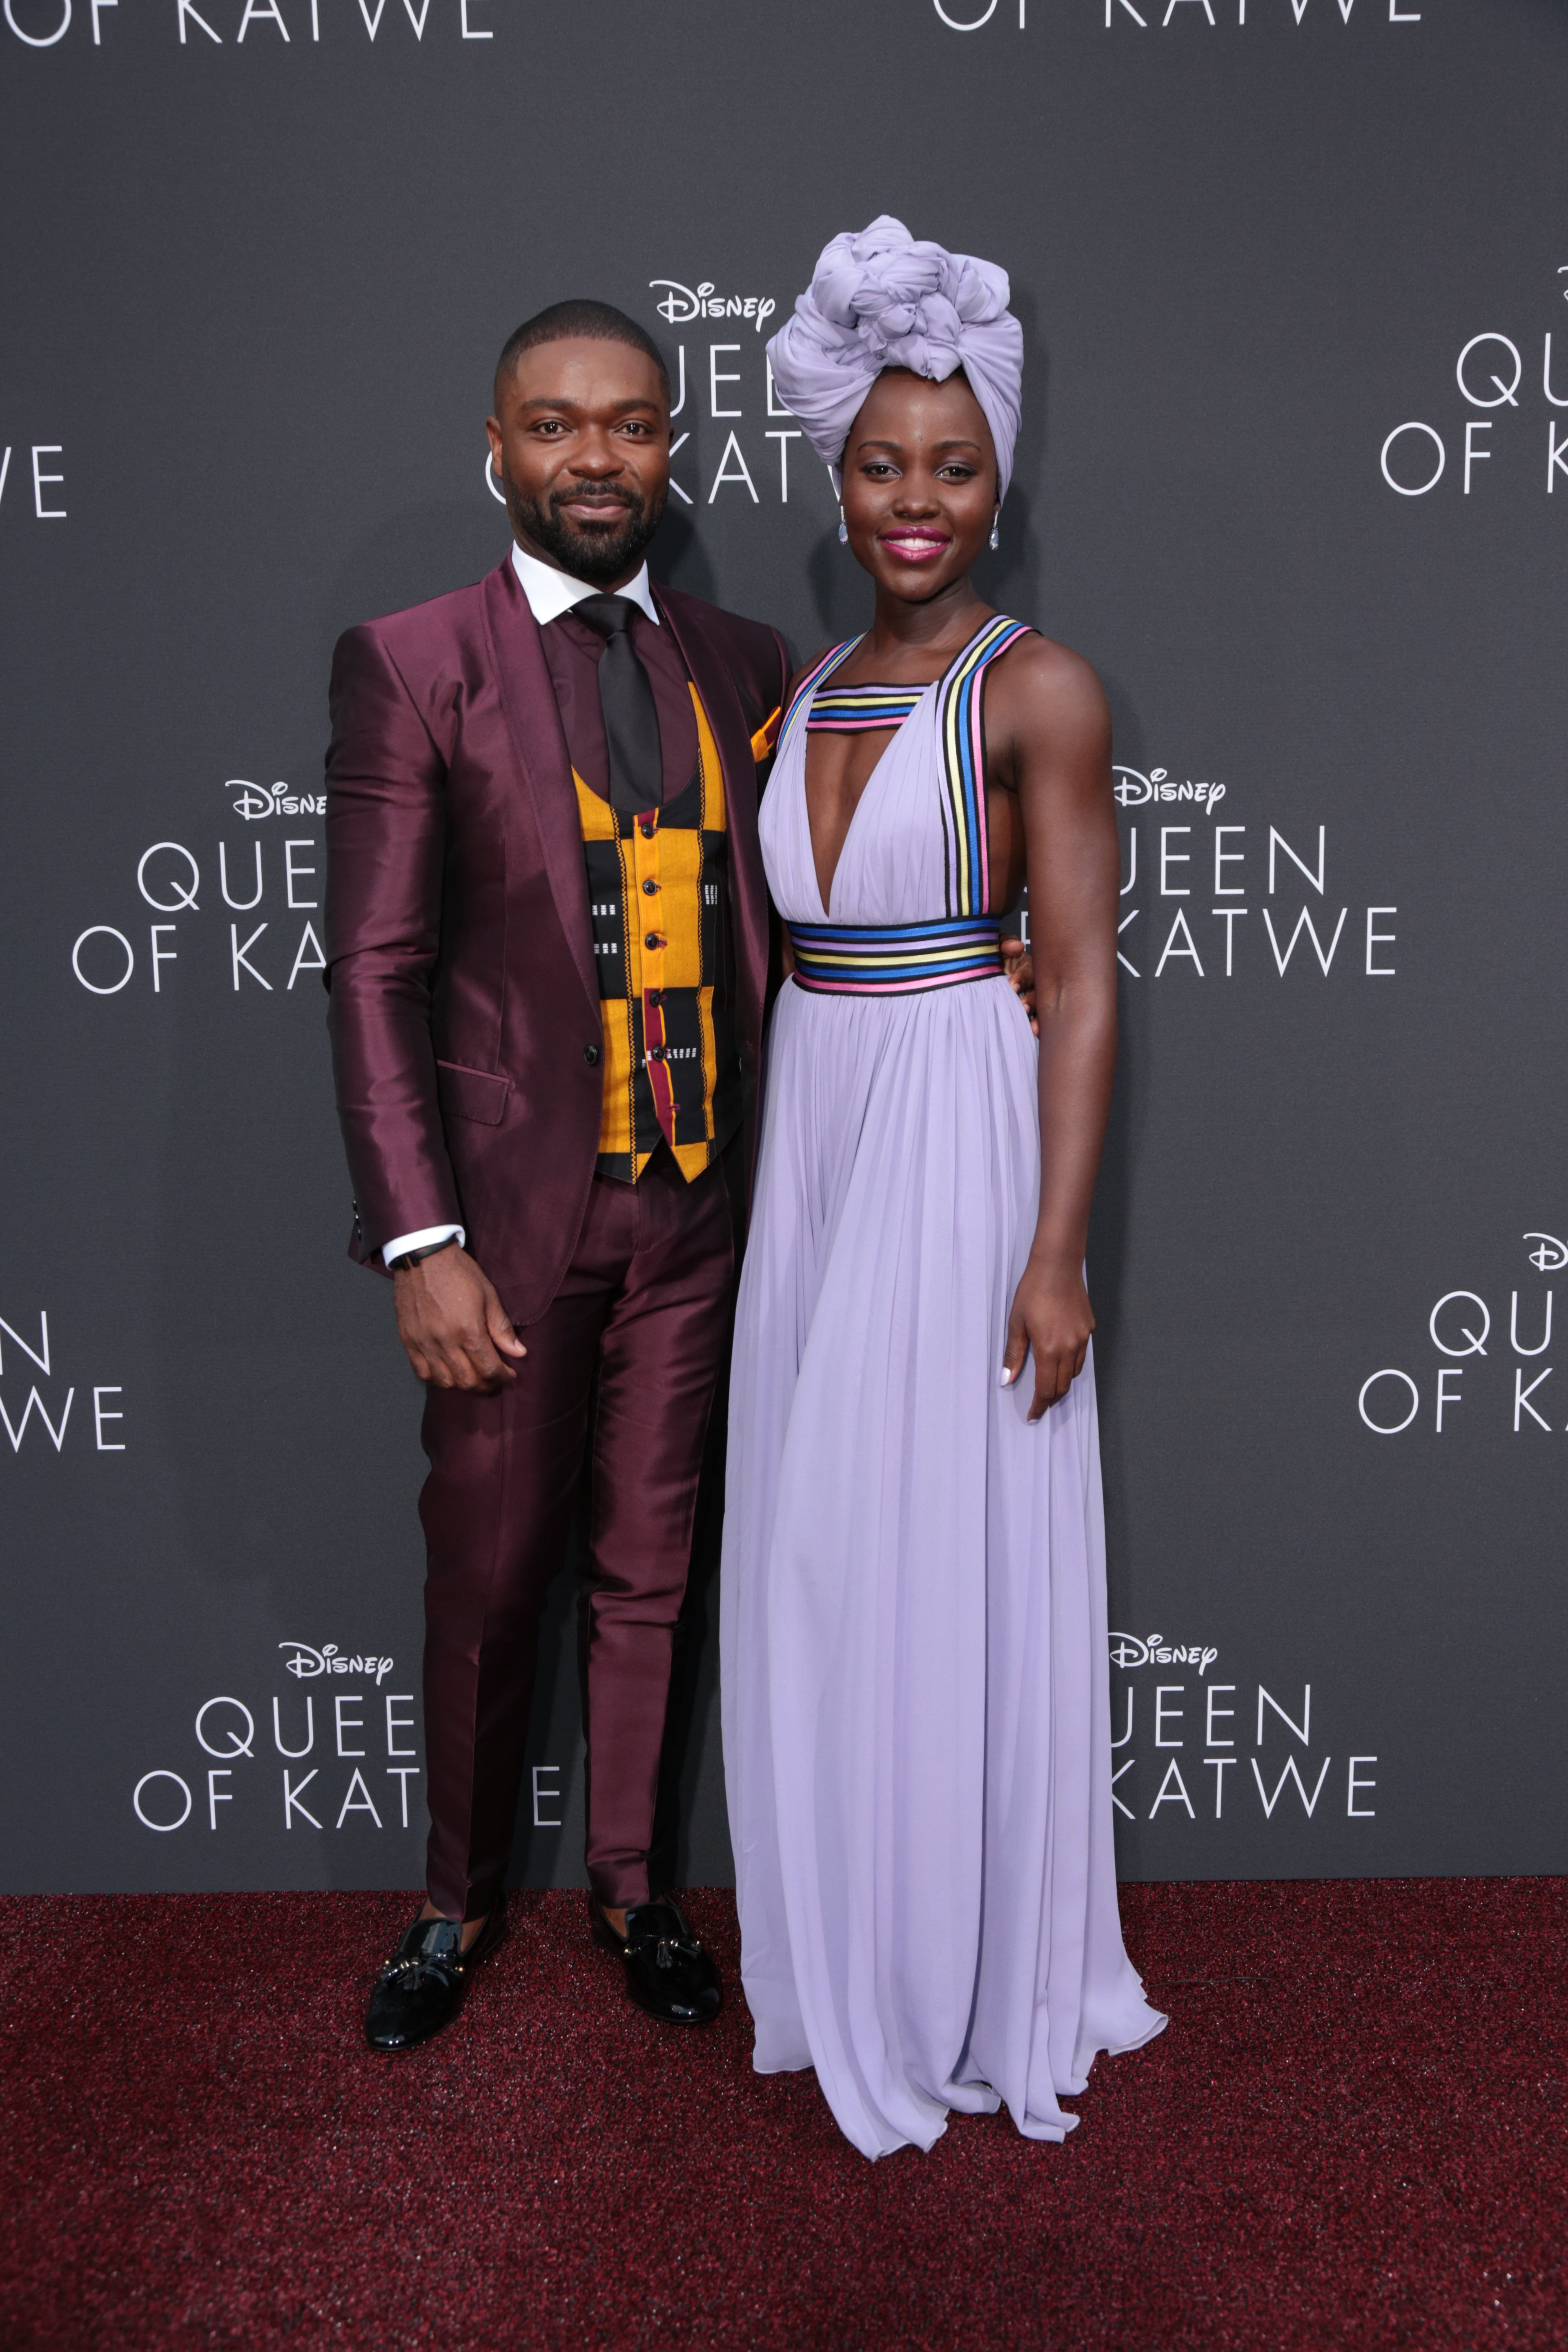 David Oyelowo & Lupita Nyong'o at the premiere of Queen of Katwe